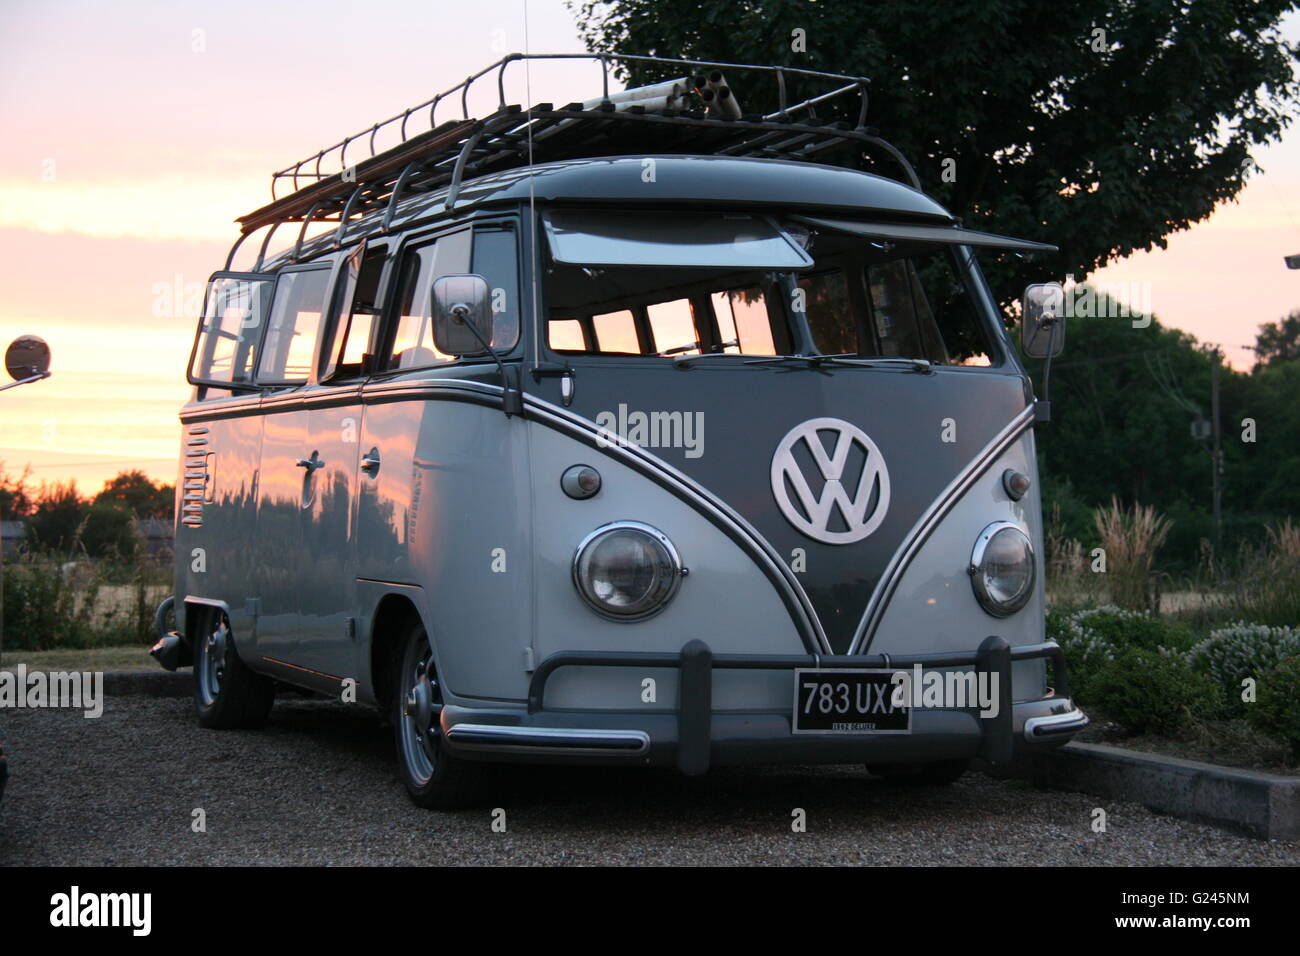 A PICTURE AT SUNSET OF A VINTAGE VW CAMPER VAN - Stock Image